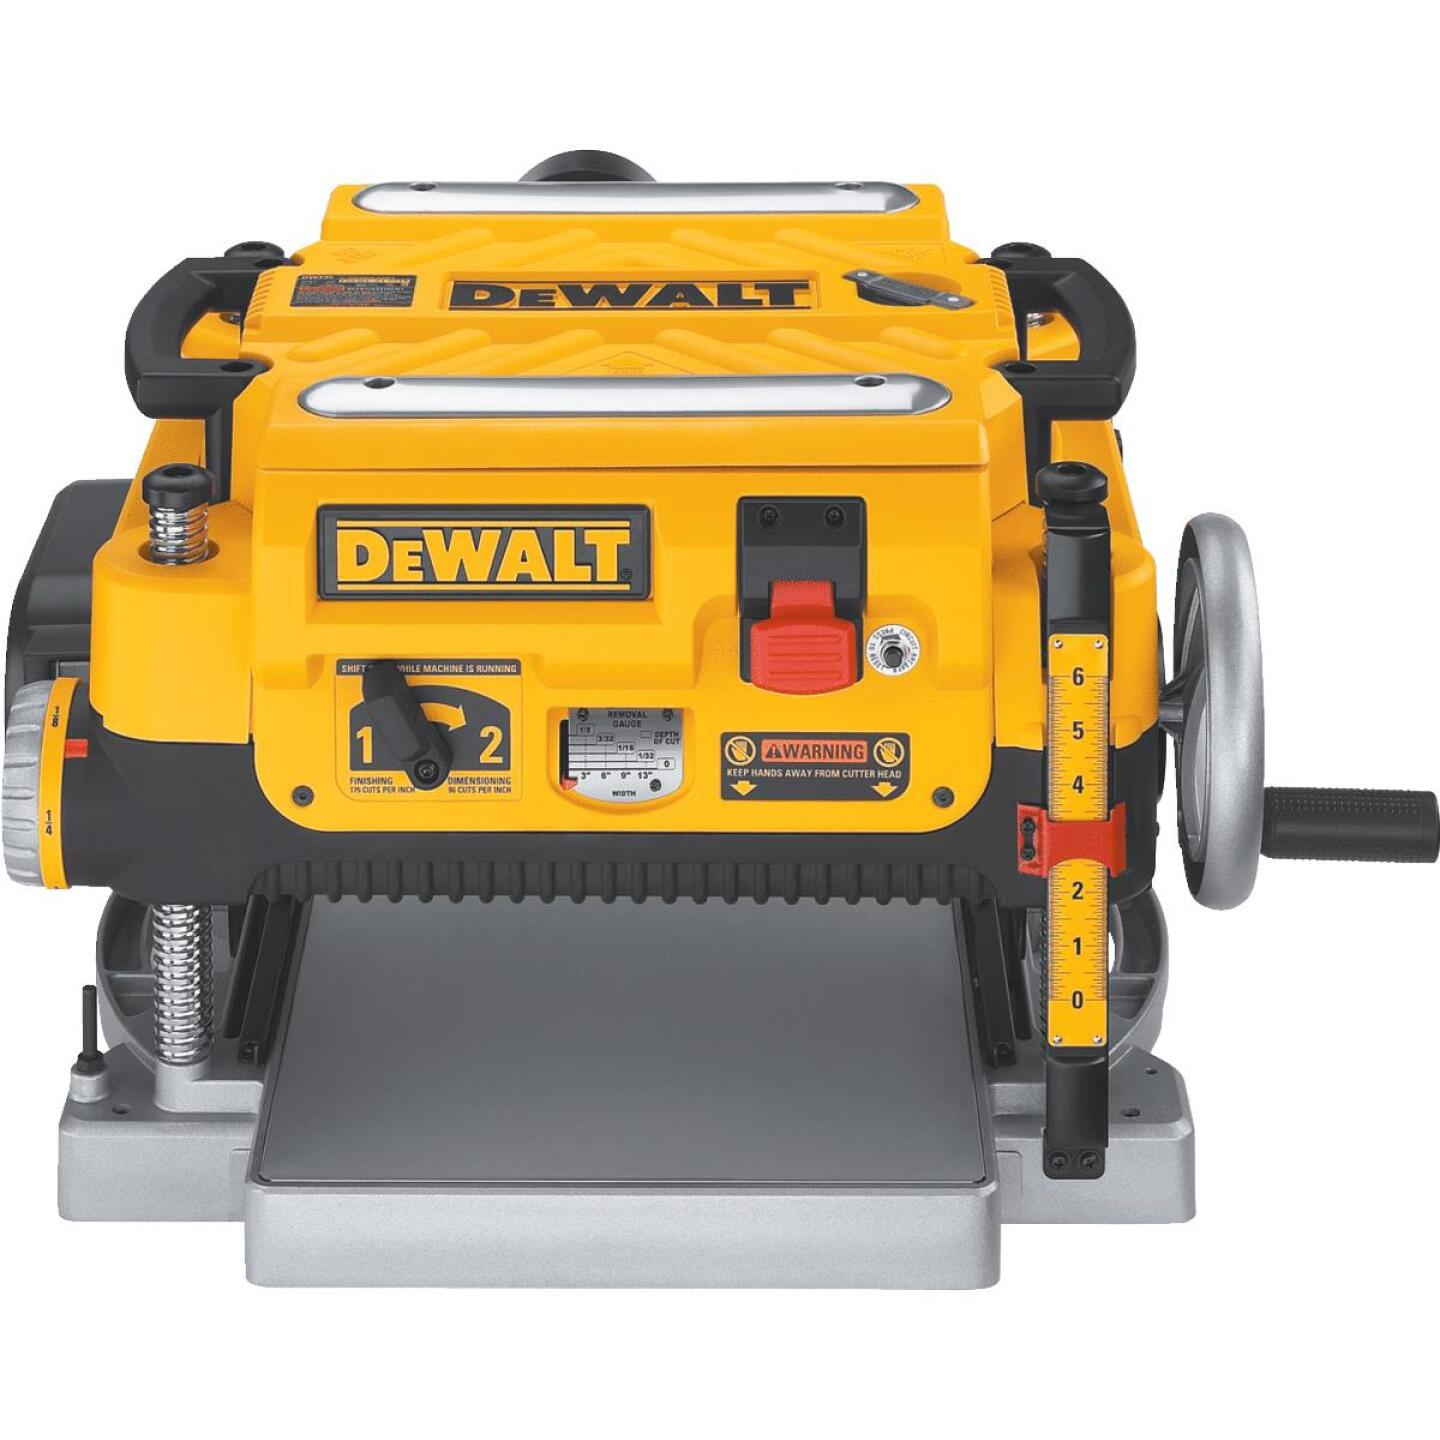 DeWalt 13 In. Three Knife Two-Speed Portable Planer Image 1